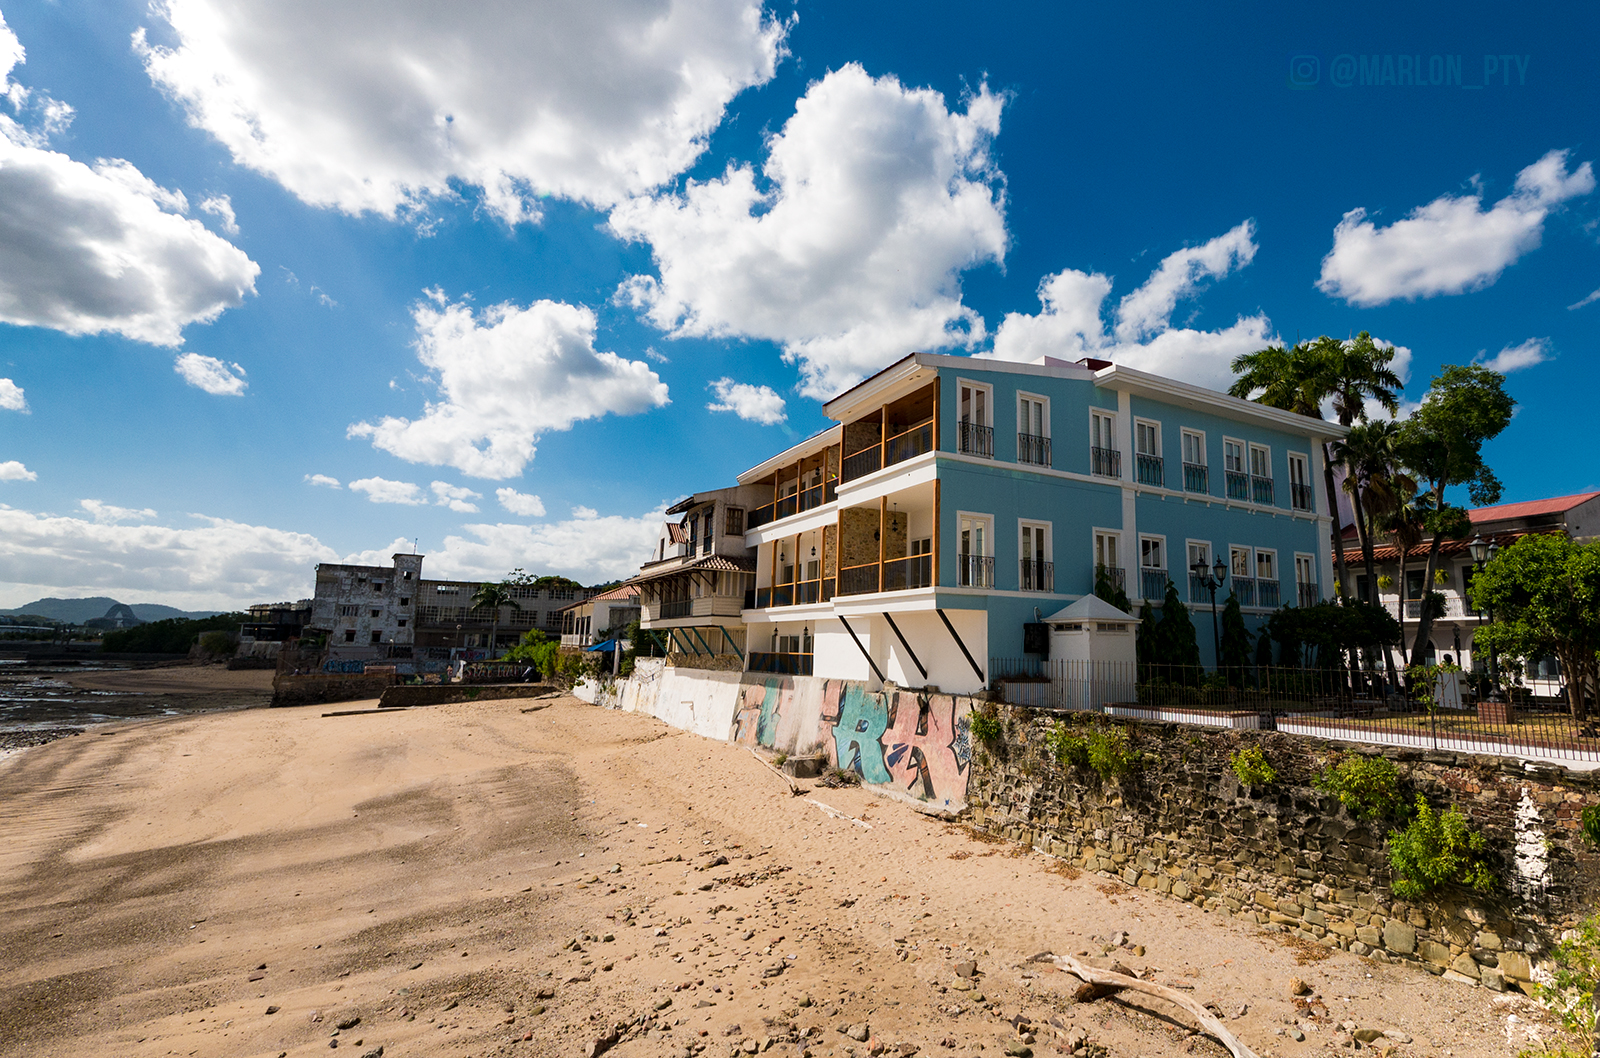 Newly restore apartments on the beach in Casco Viejo. Photo: Marlon I. Torres